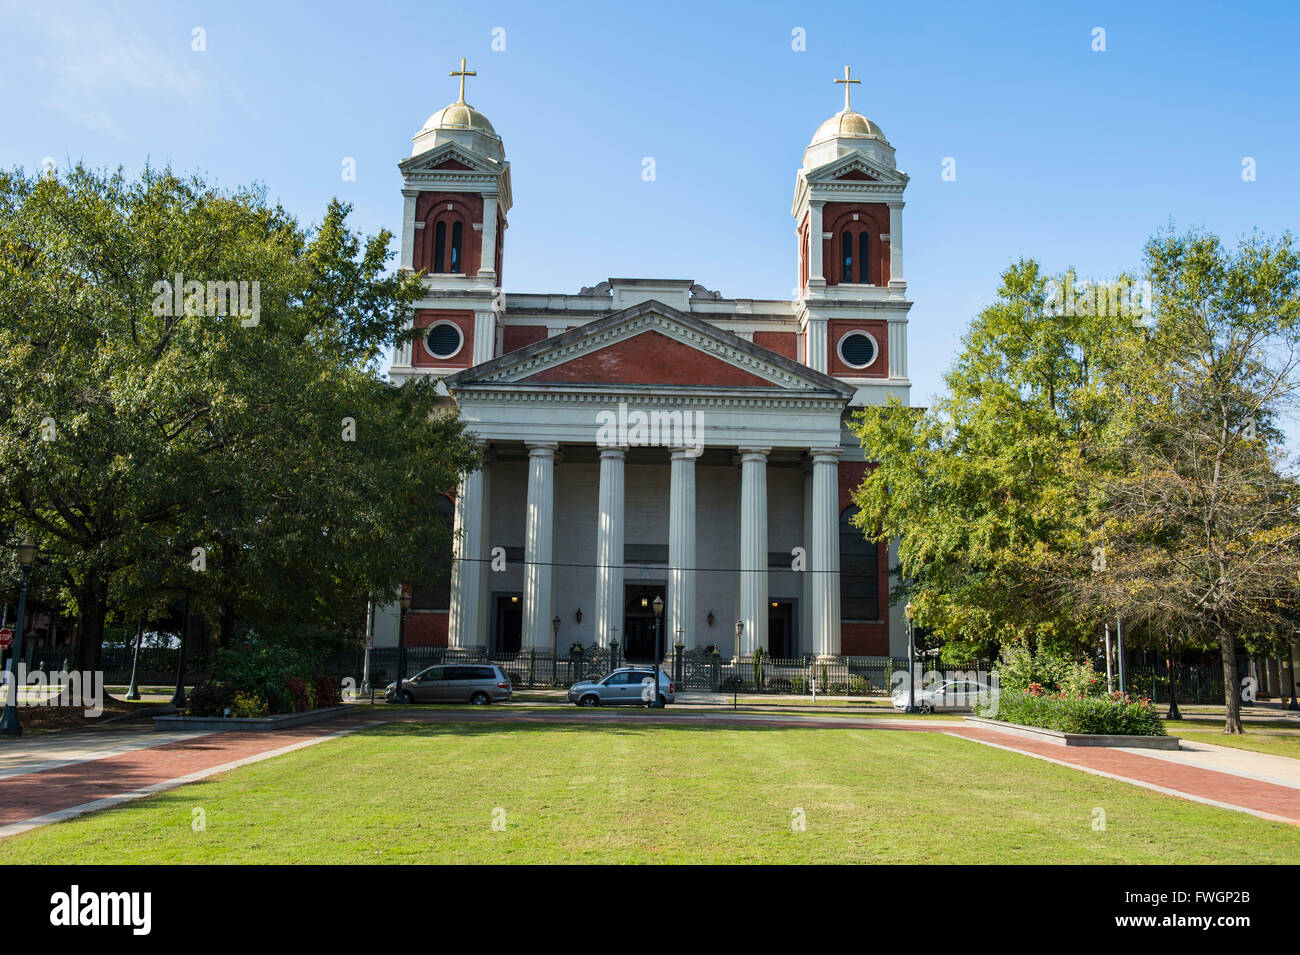 The Cathedral Basilica of the Immaculate Conception, seat of the Archdiocese of Mobile, Alabama, United States of - Stock Image